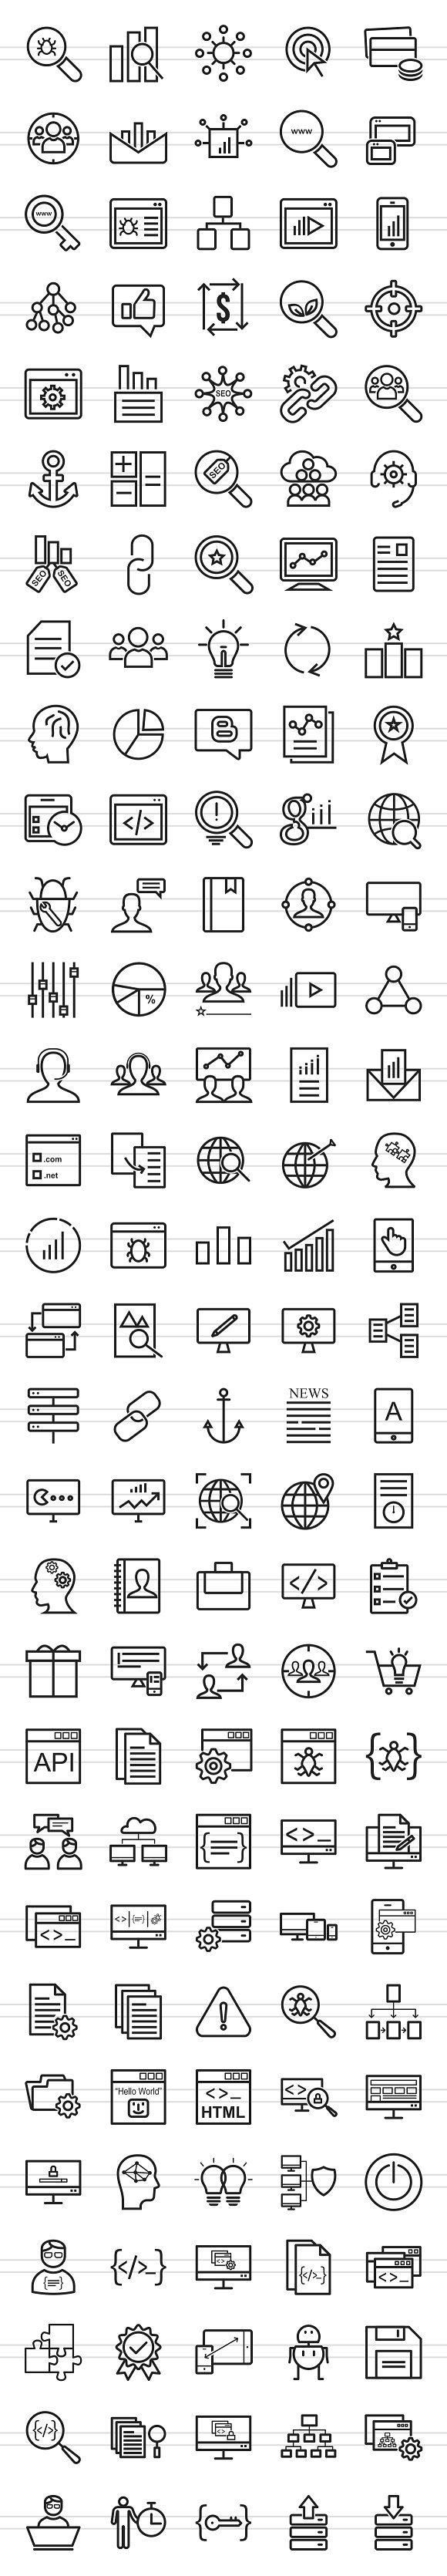 150 SEO & Development Line Icons in Graphics - product preview 1